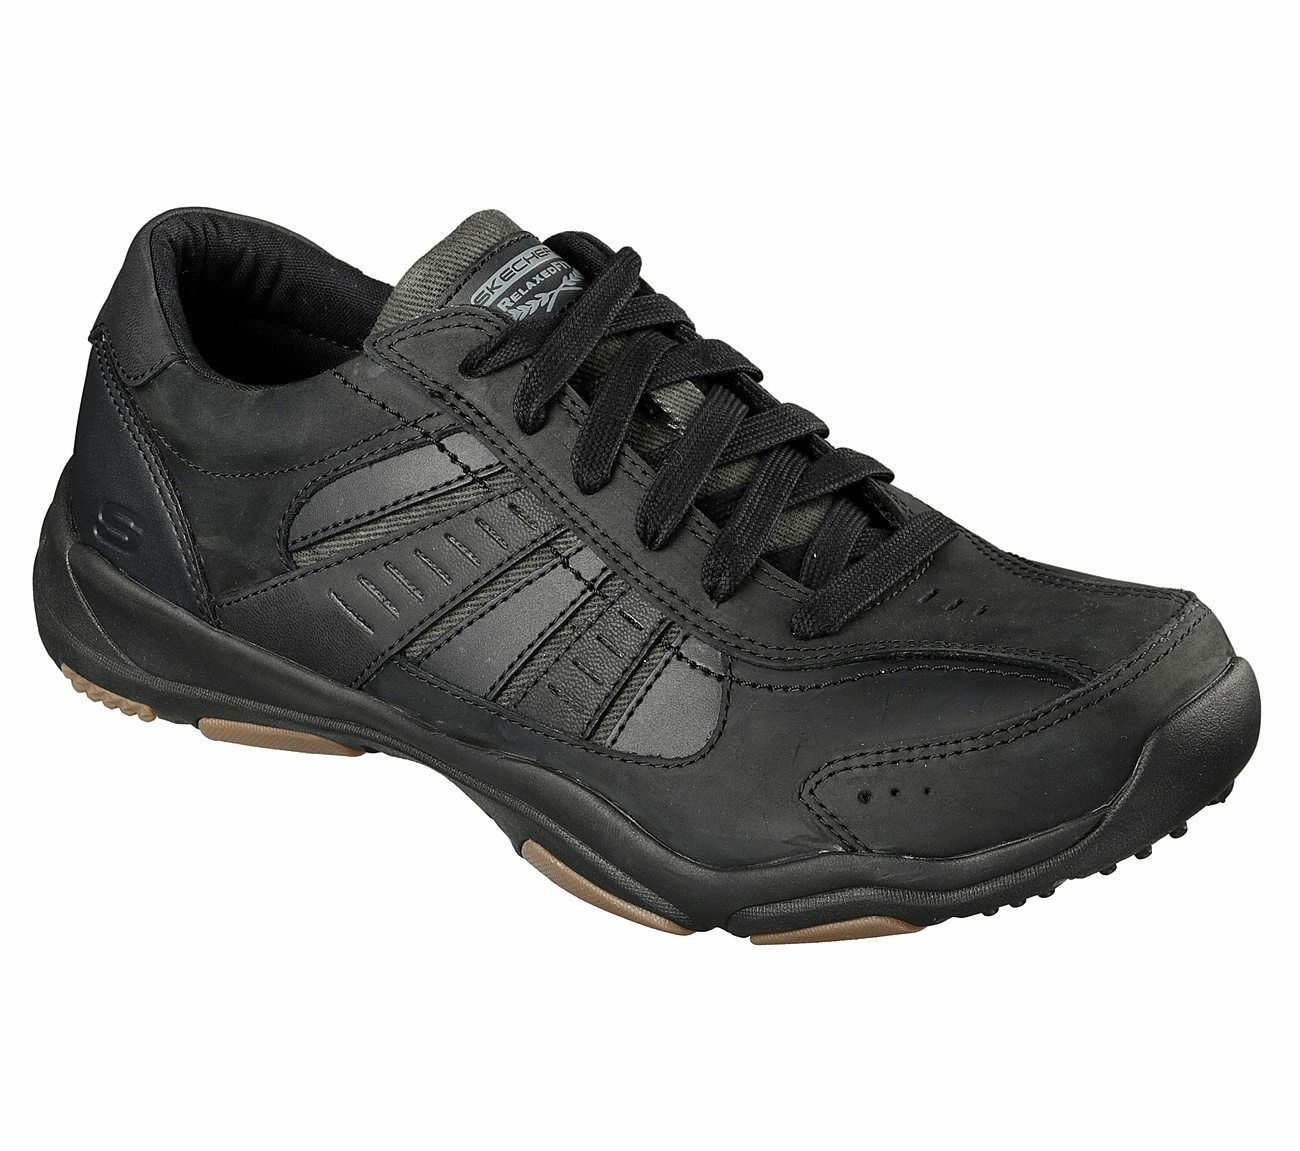 64833/BLK, SKECHERS, USA Uomo Relaxed Fit®: Larson-Nerick shoe Air Cooled Memory